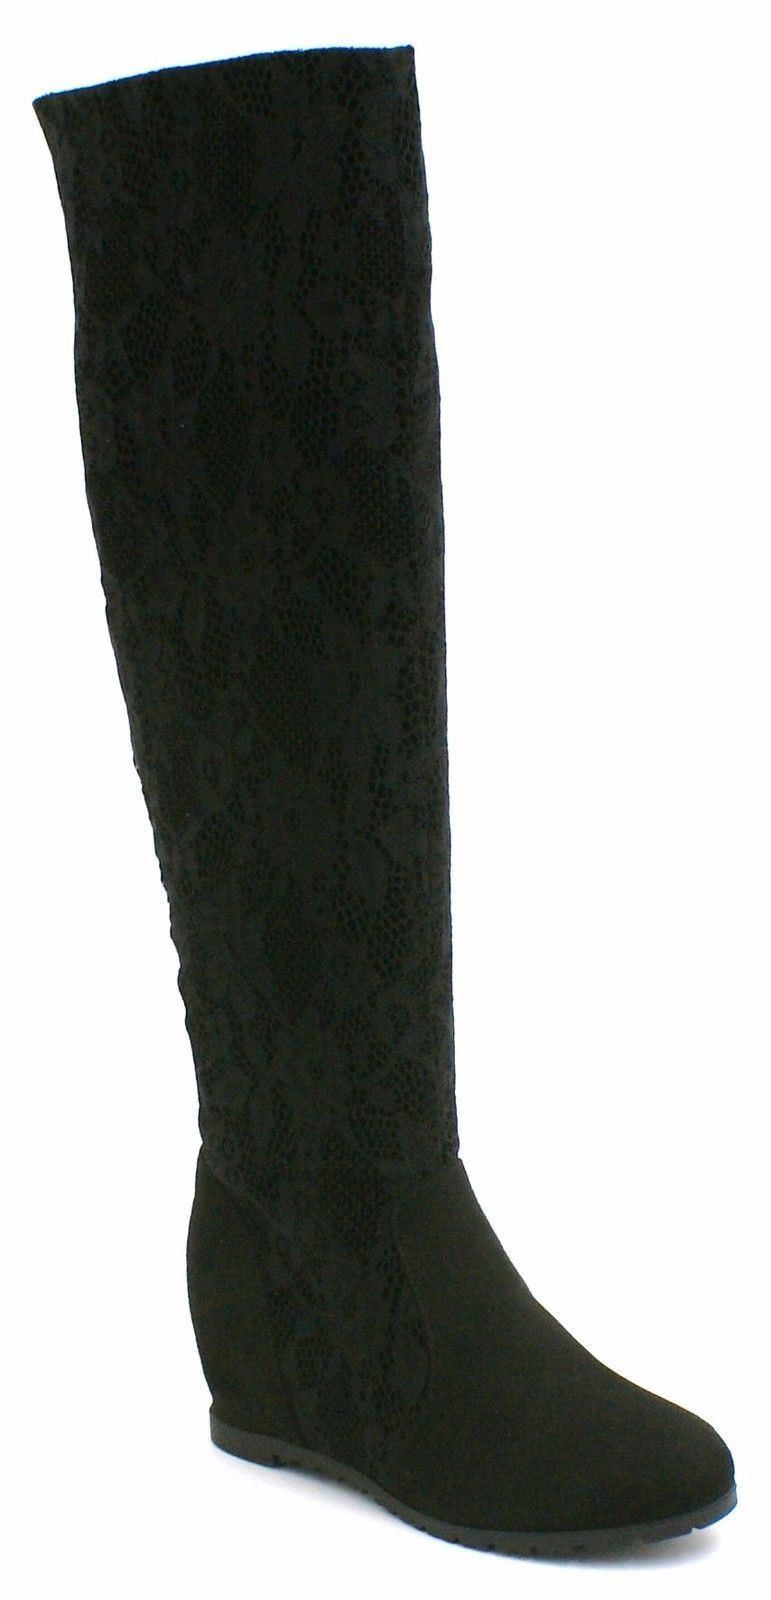 womens warm lace knee high boots shoes wedge